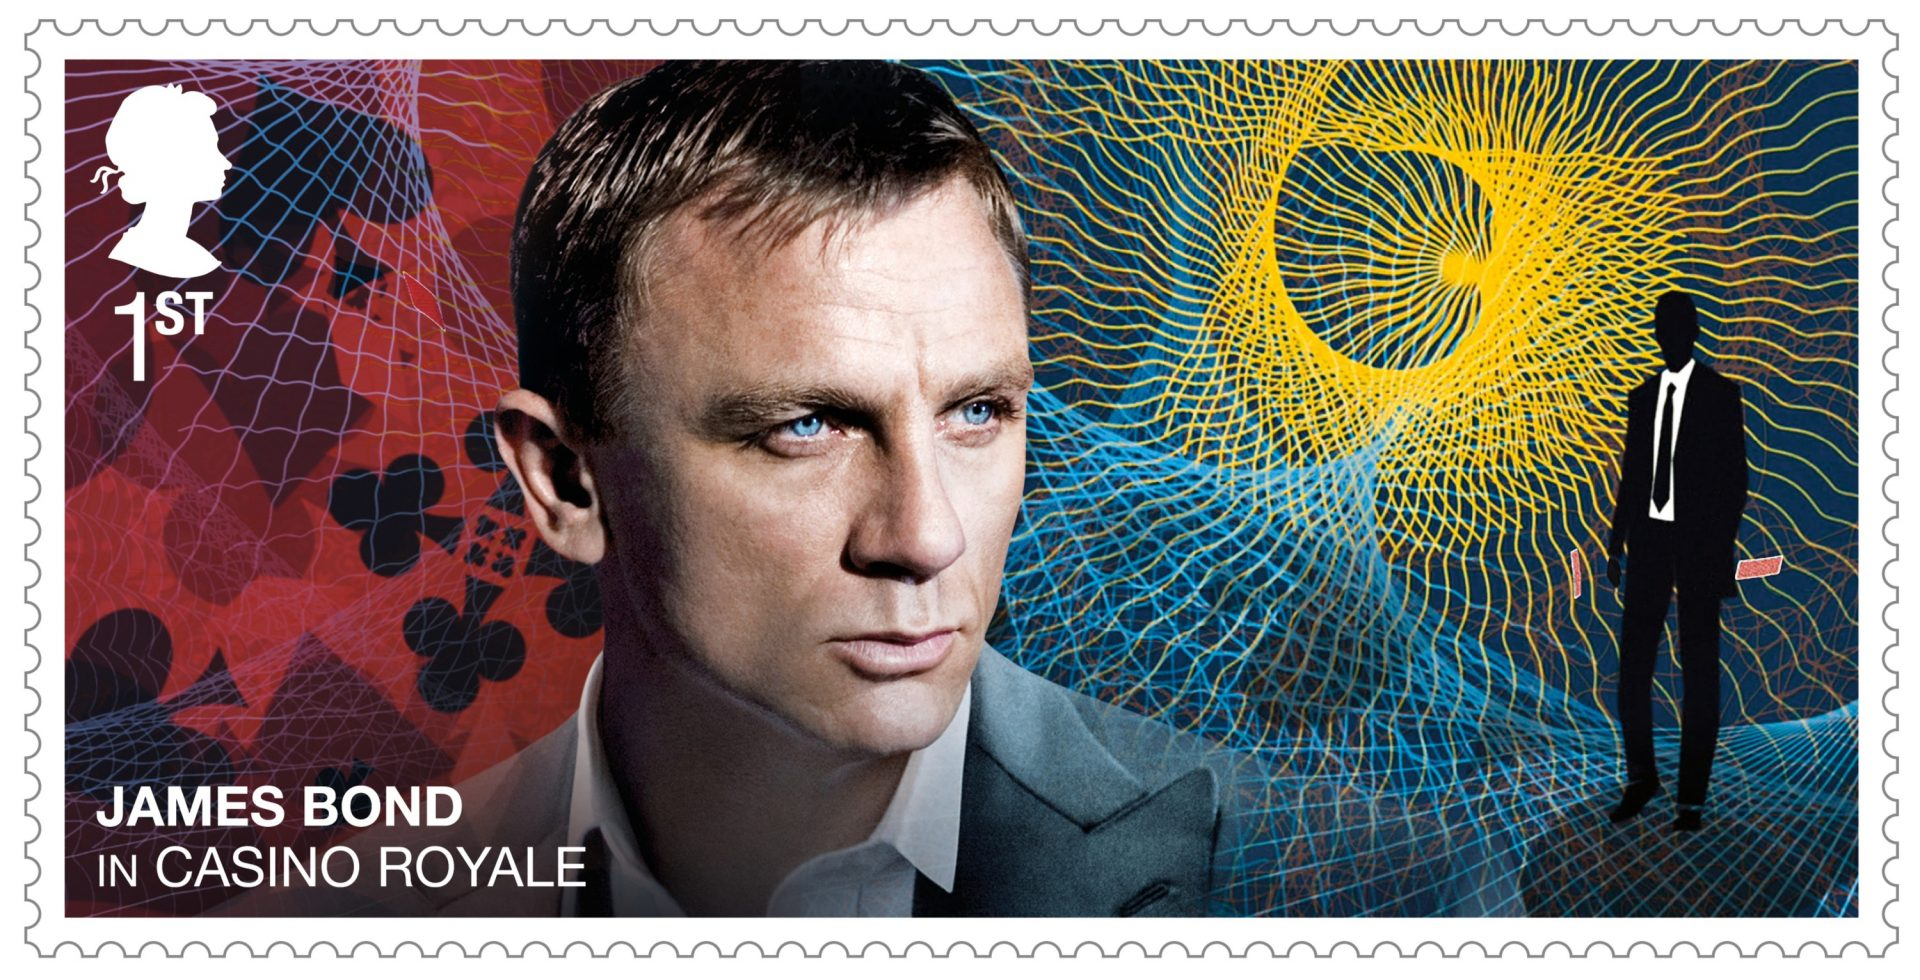 Stamps to celebrate James Bond films ahead of new movie